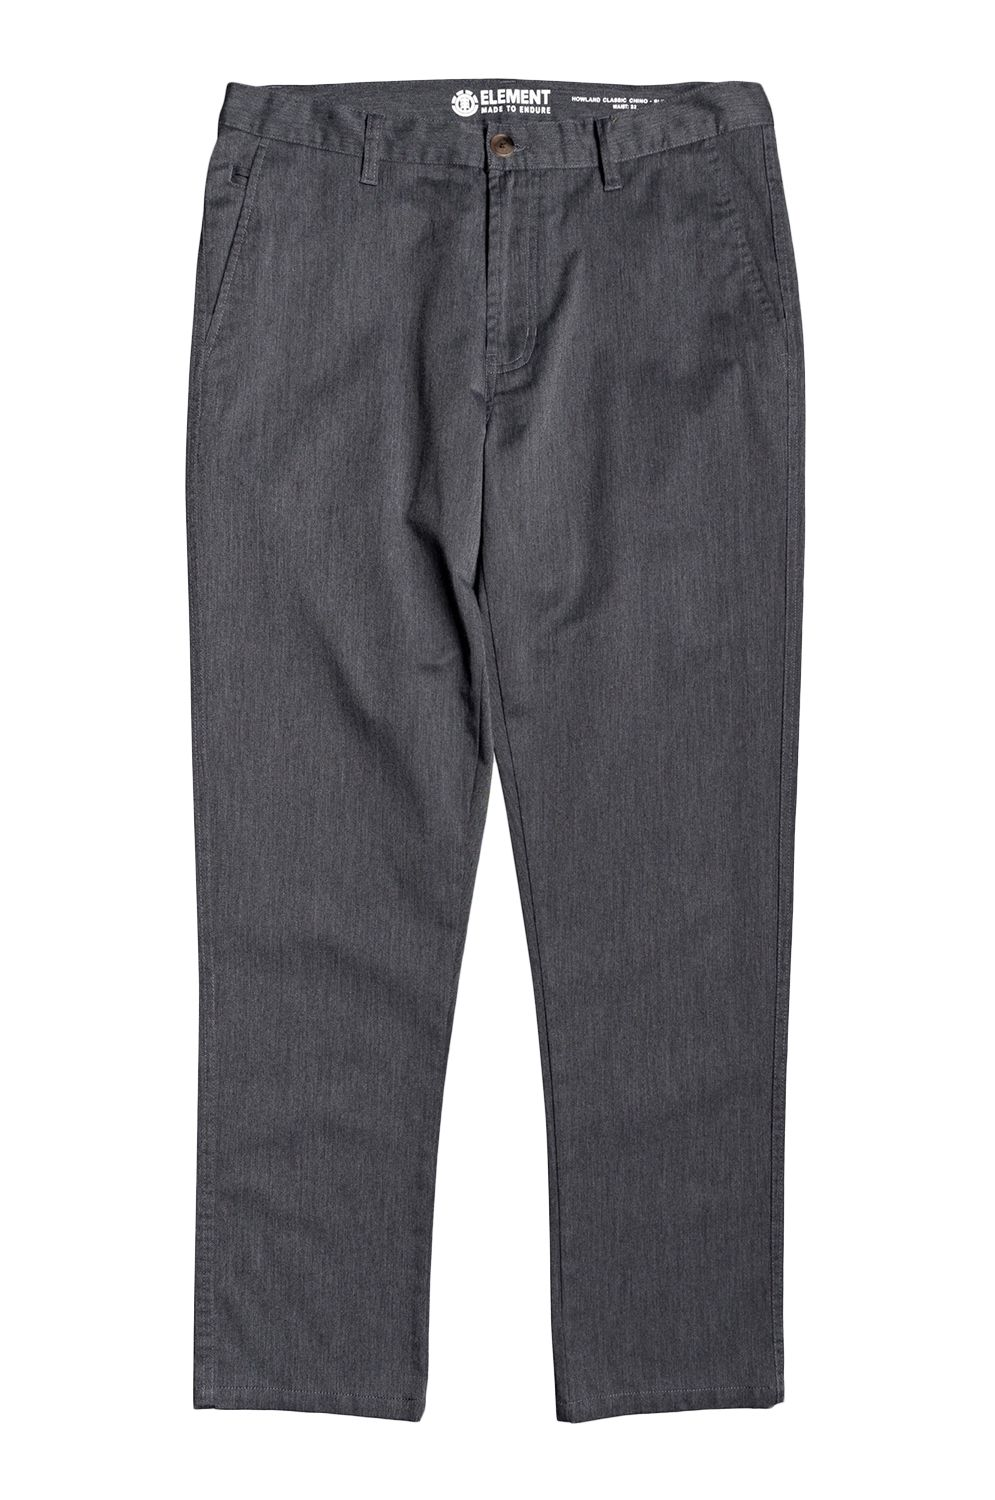 Element Pants HOWLAND CLASSIC CHIN Charcoal Heather